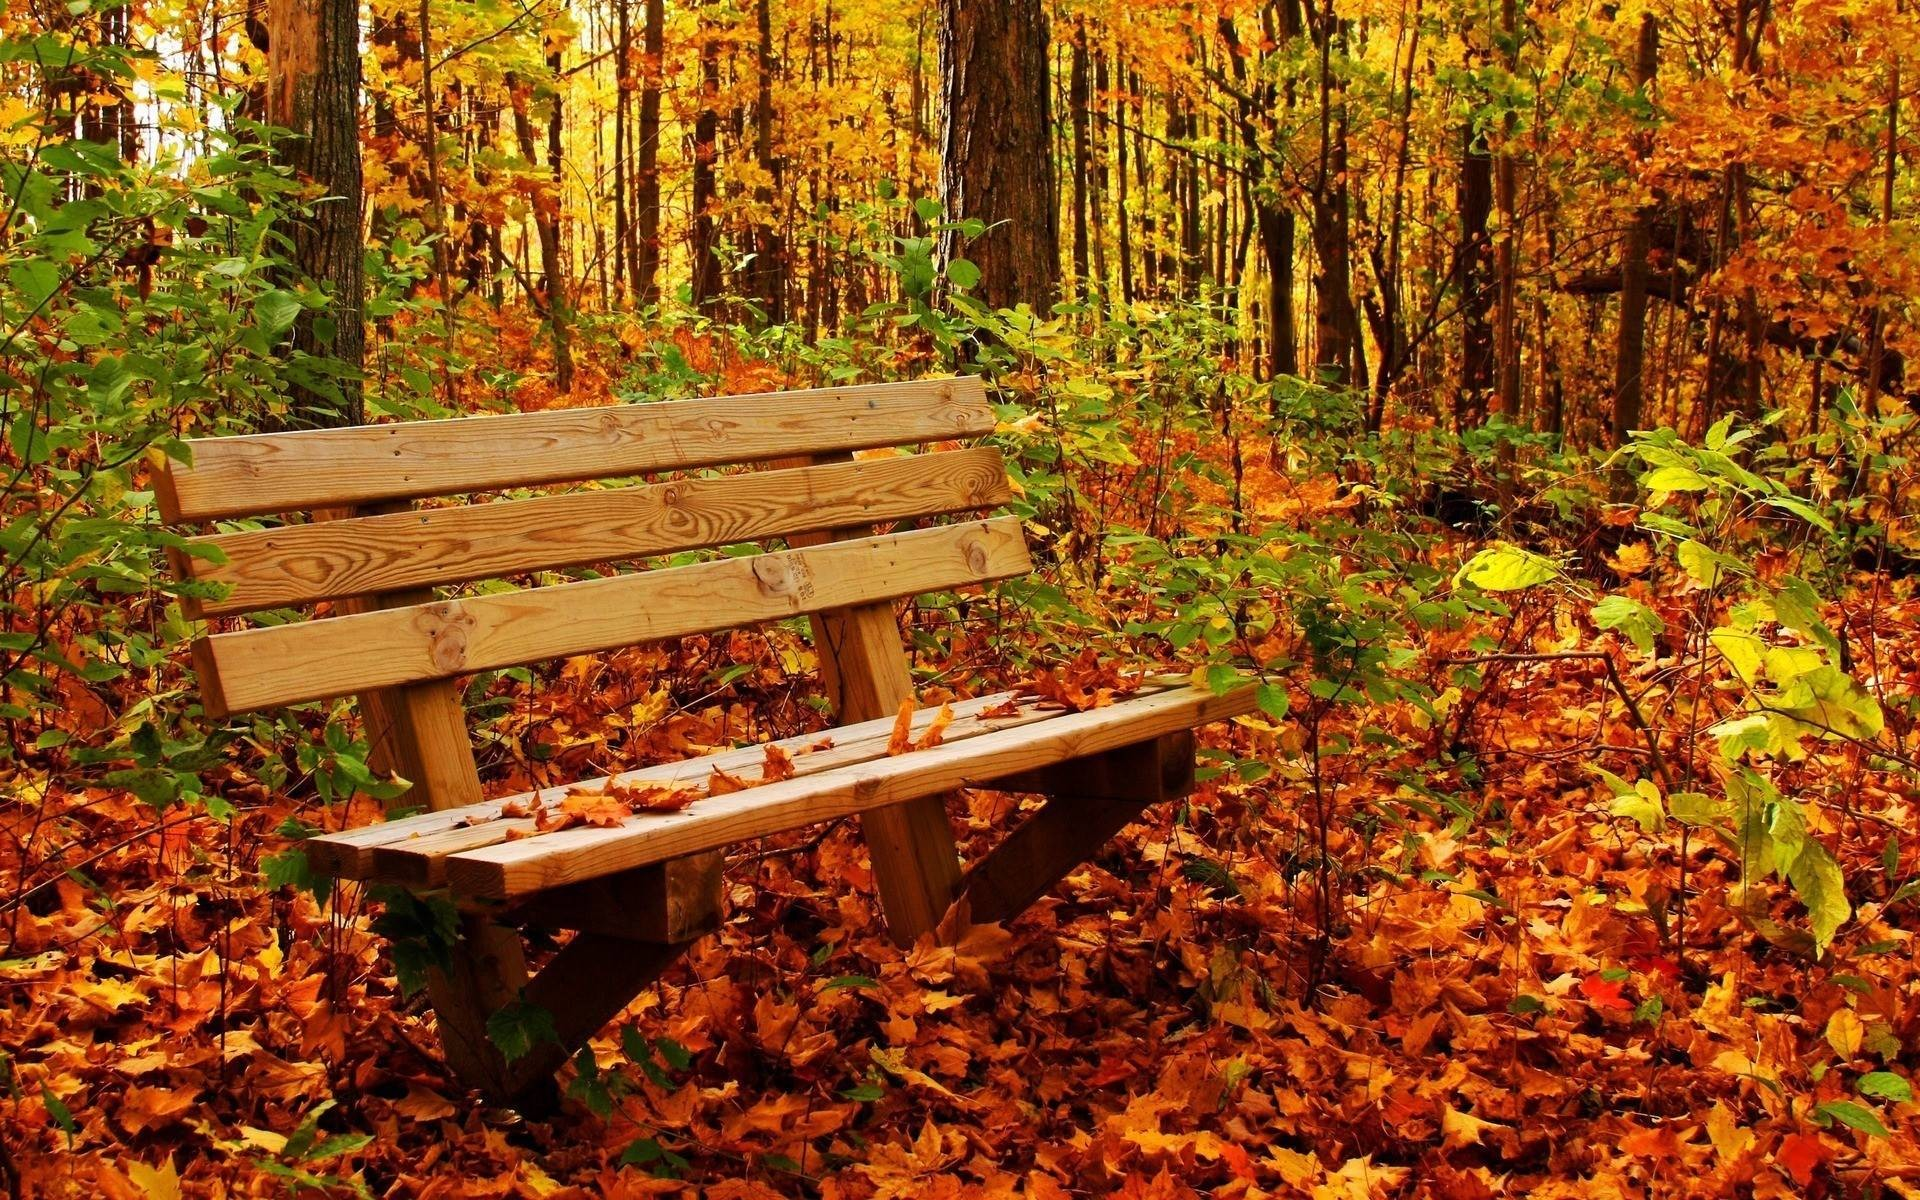 1920x1200 Desktop Wallpaper Nature Autumn Hd Pictures 4 HD Wallpapers | Eakai.